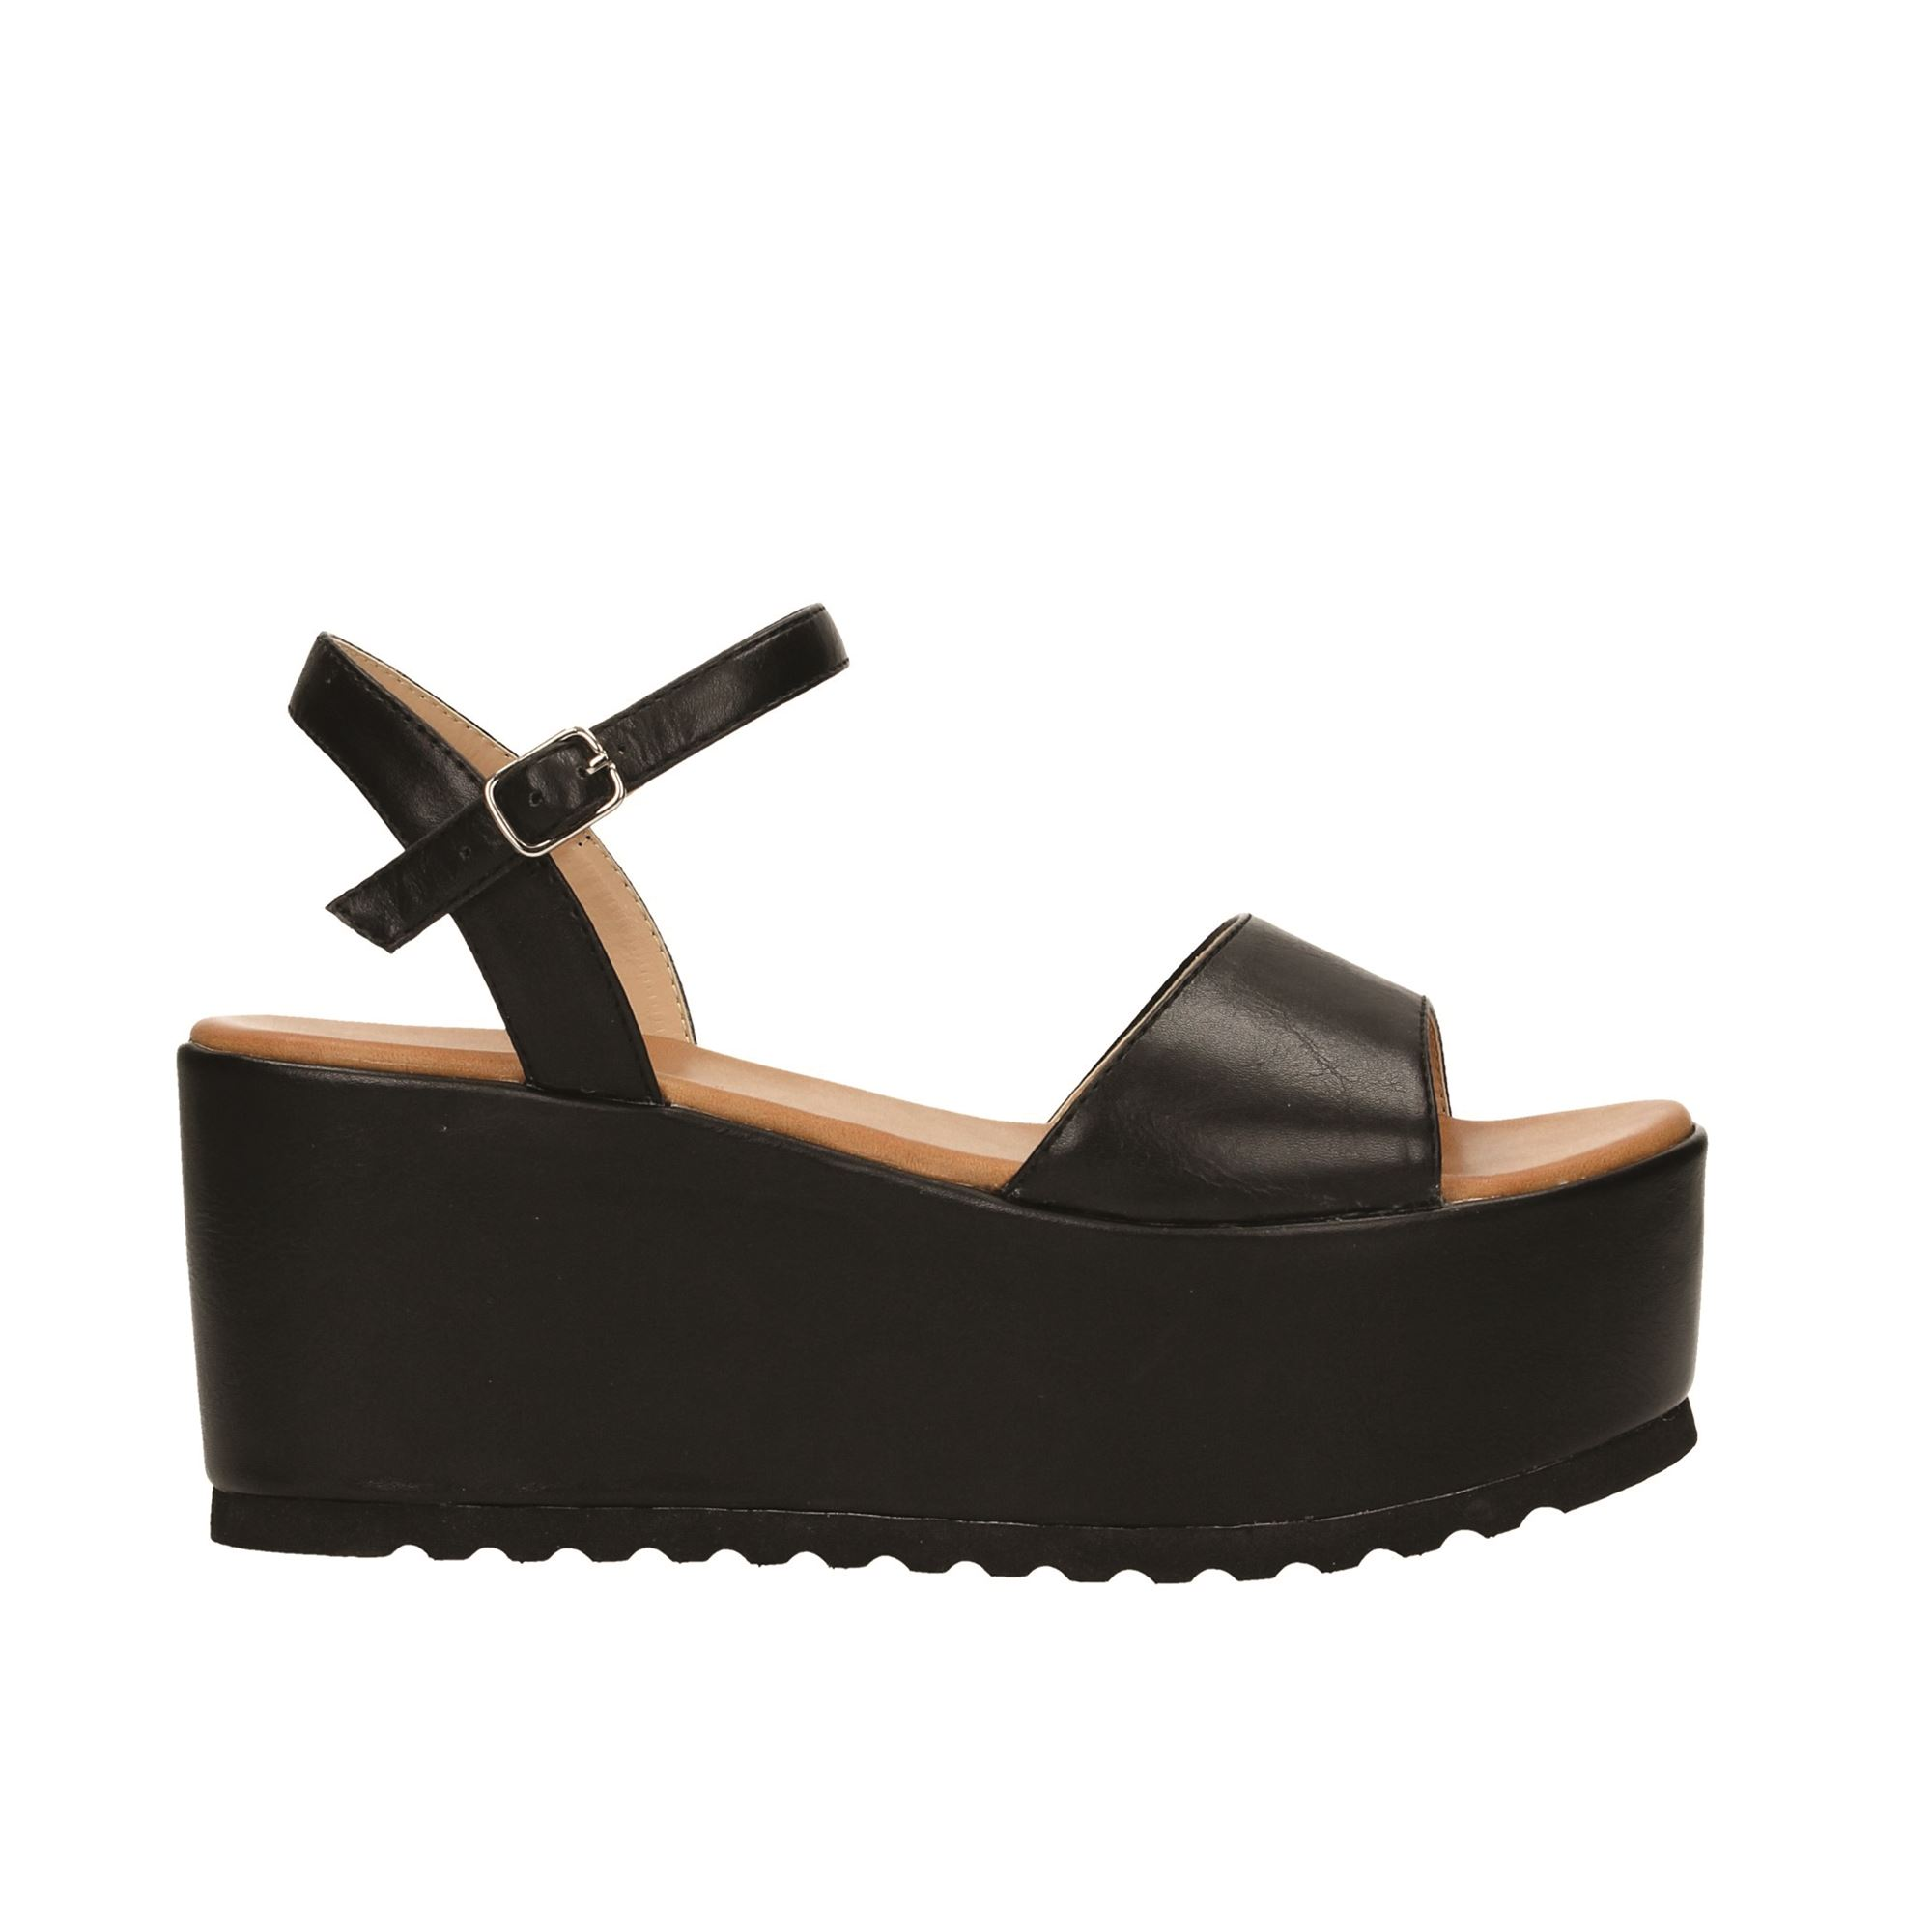 Tata Italia Shoes Woman Sandali Black 2622L-41